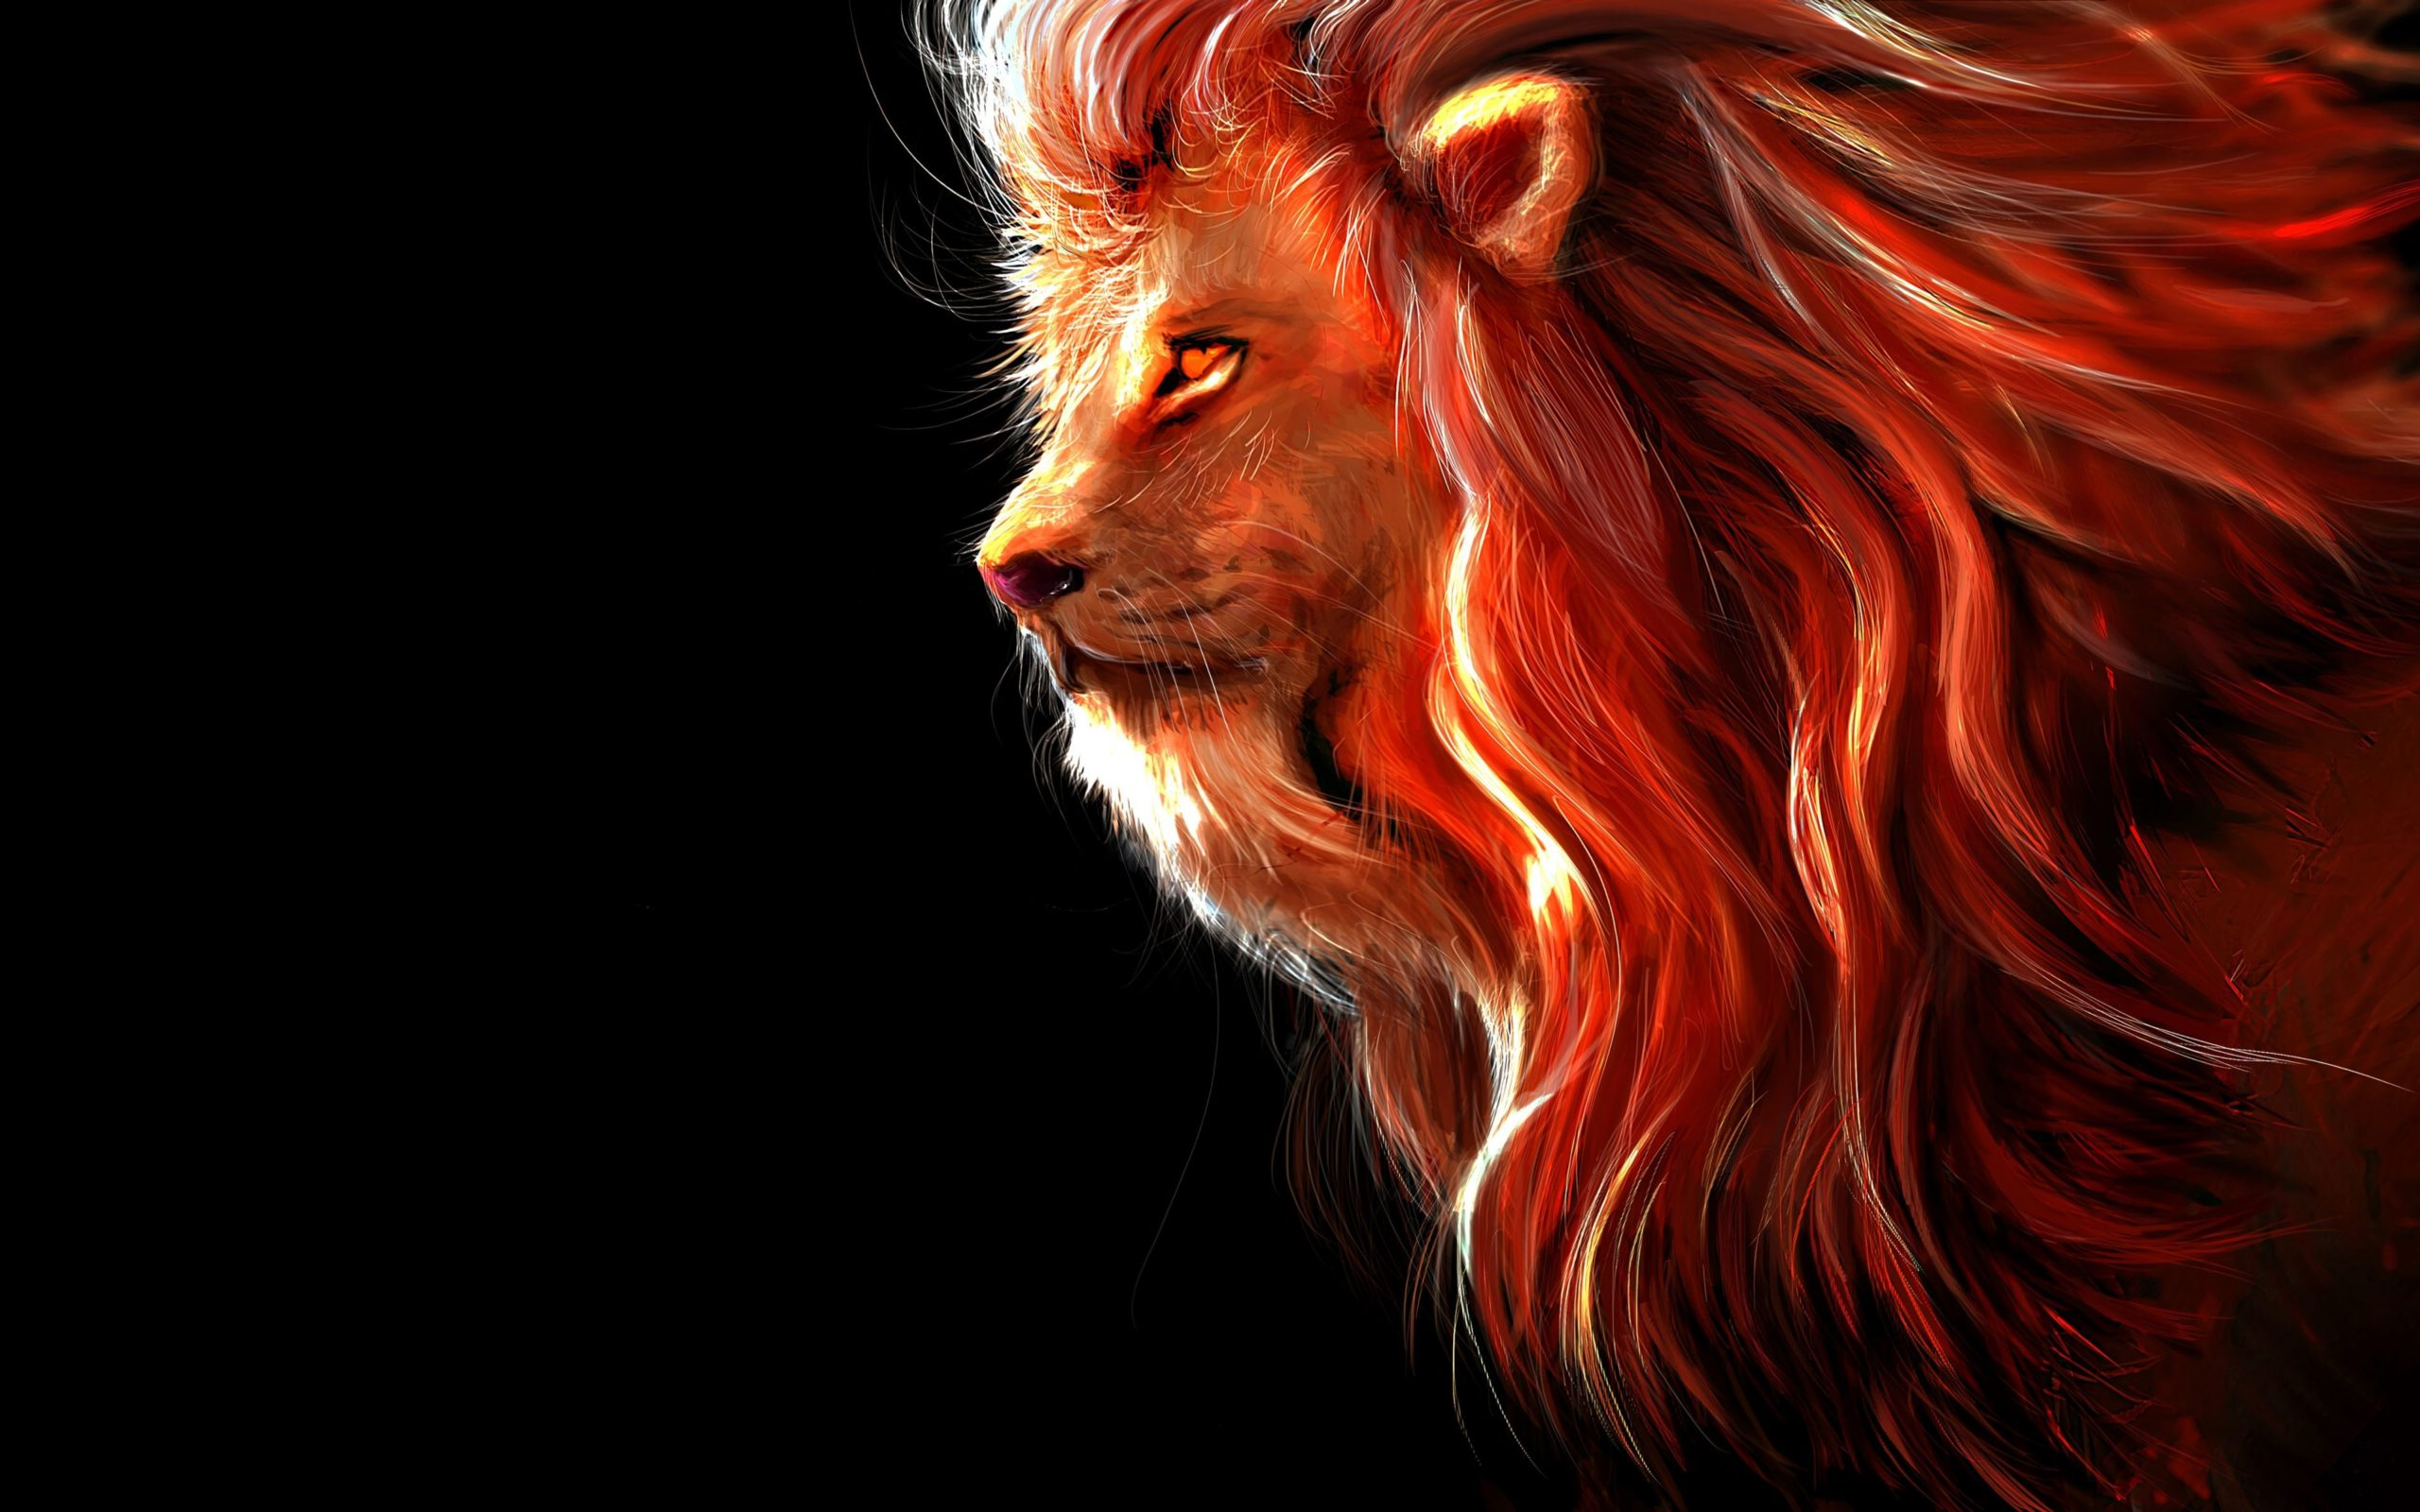 lion wallpaper download hd